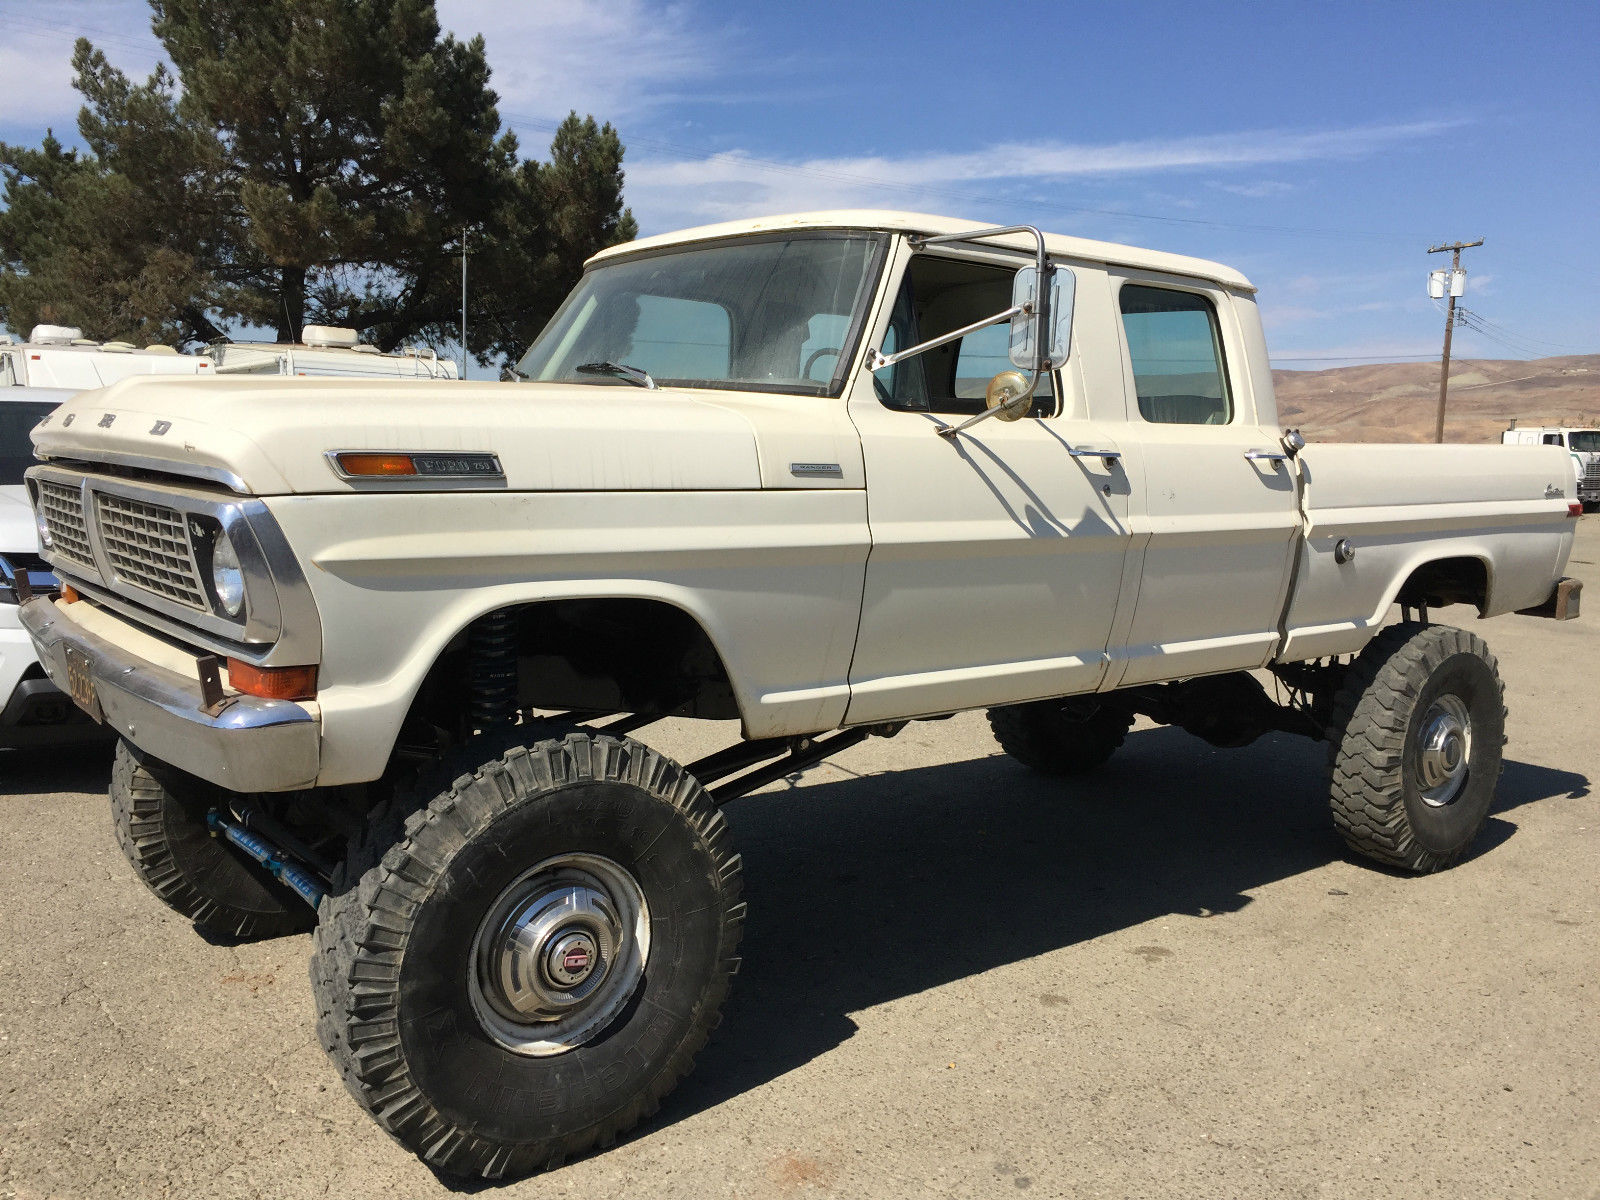 Tear Up The Trails With This 1970 Ford F 250 Crew Cab Ranger Camper Special Trucks Are A Dime Dozen These Days But It Wasnt Always That Way In Old Werent Family Haulers They Were Load And